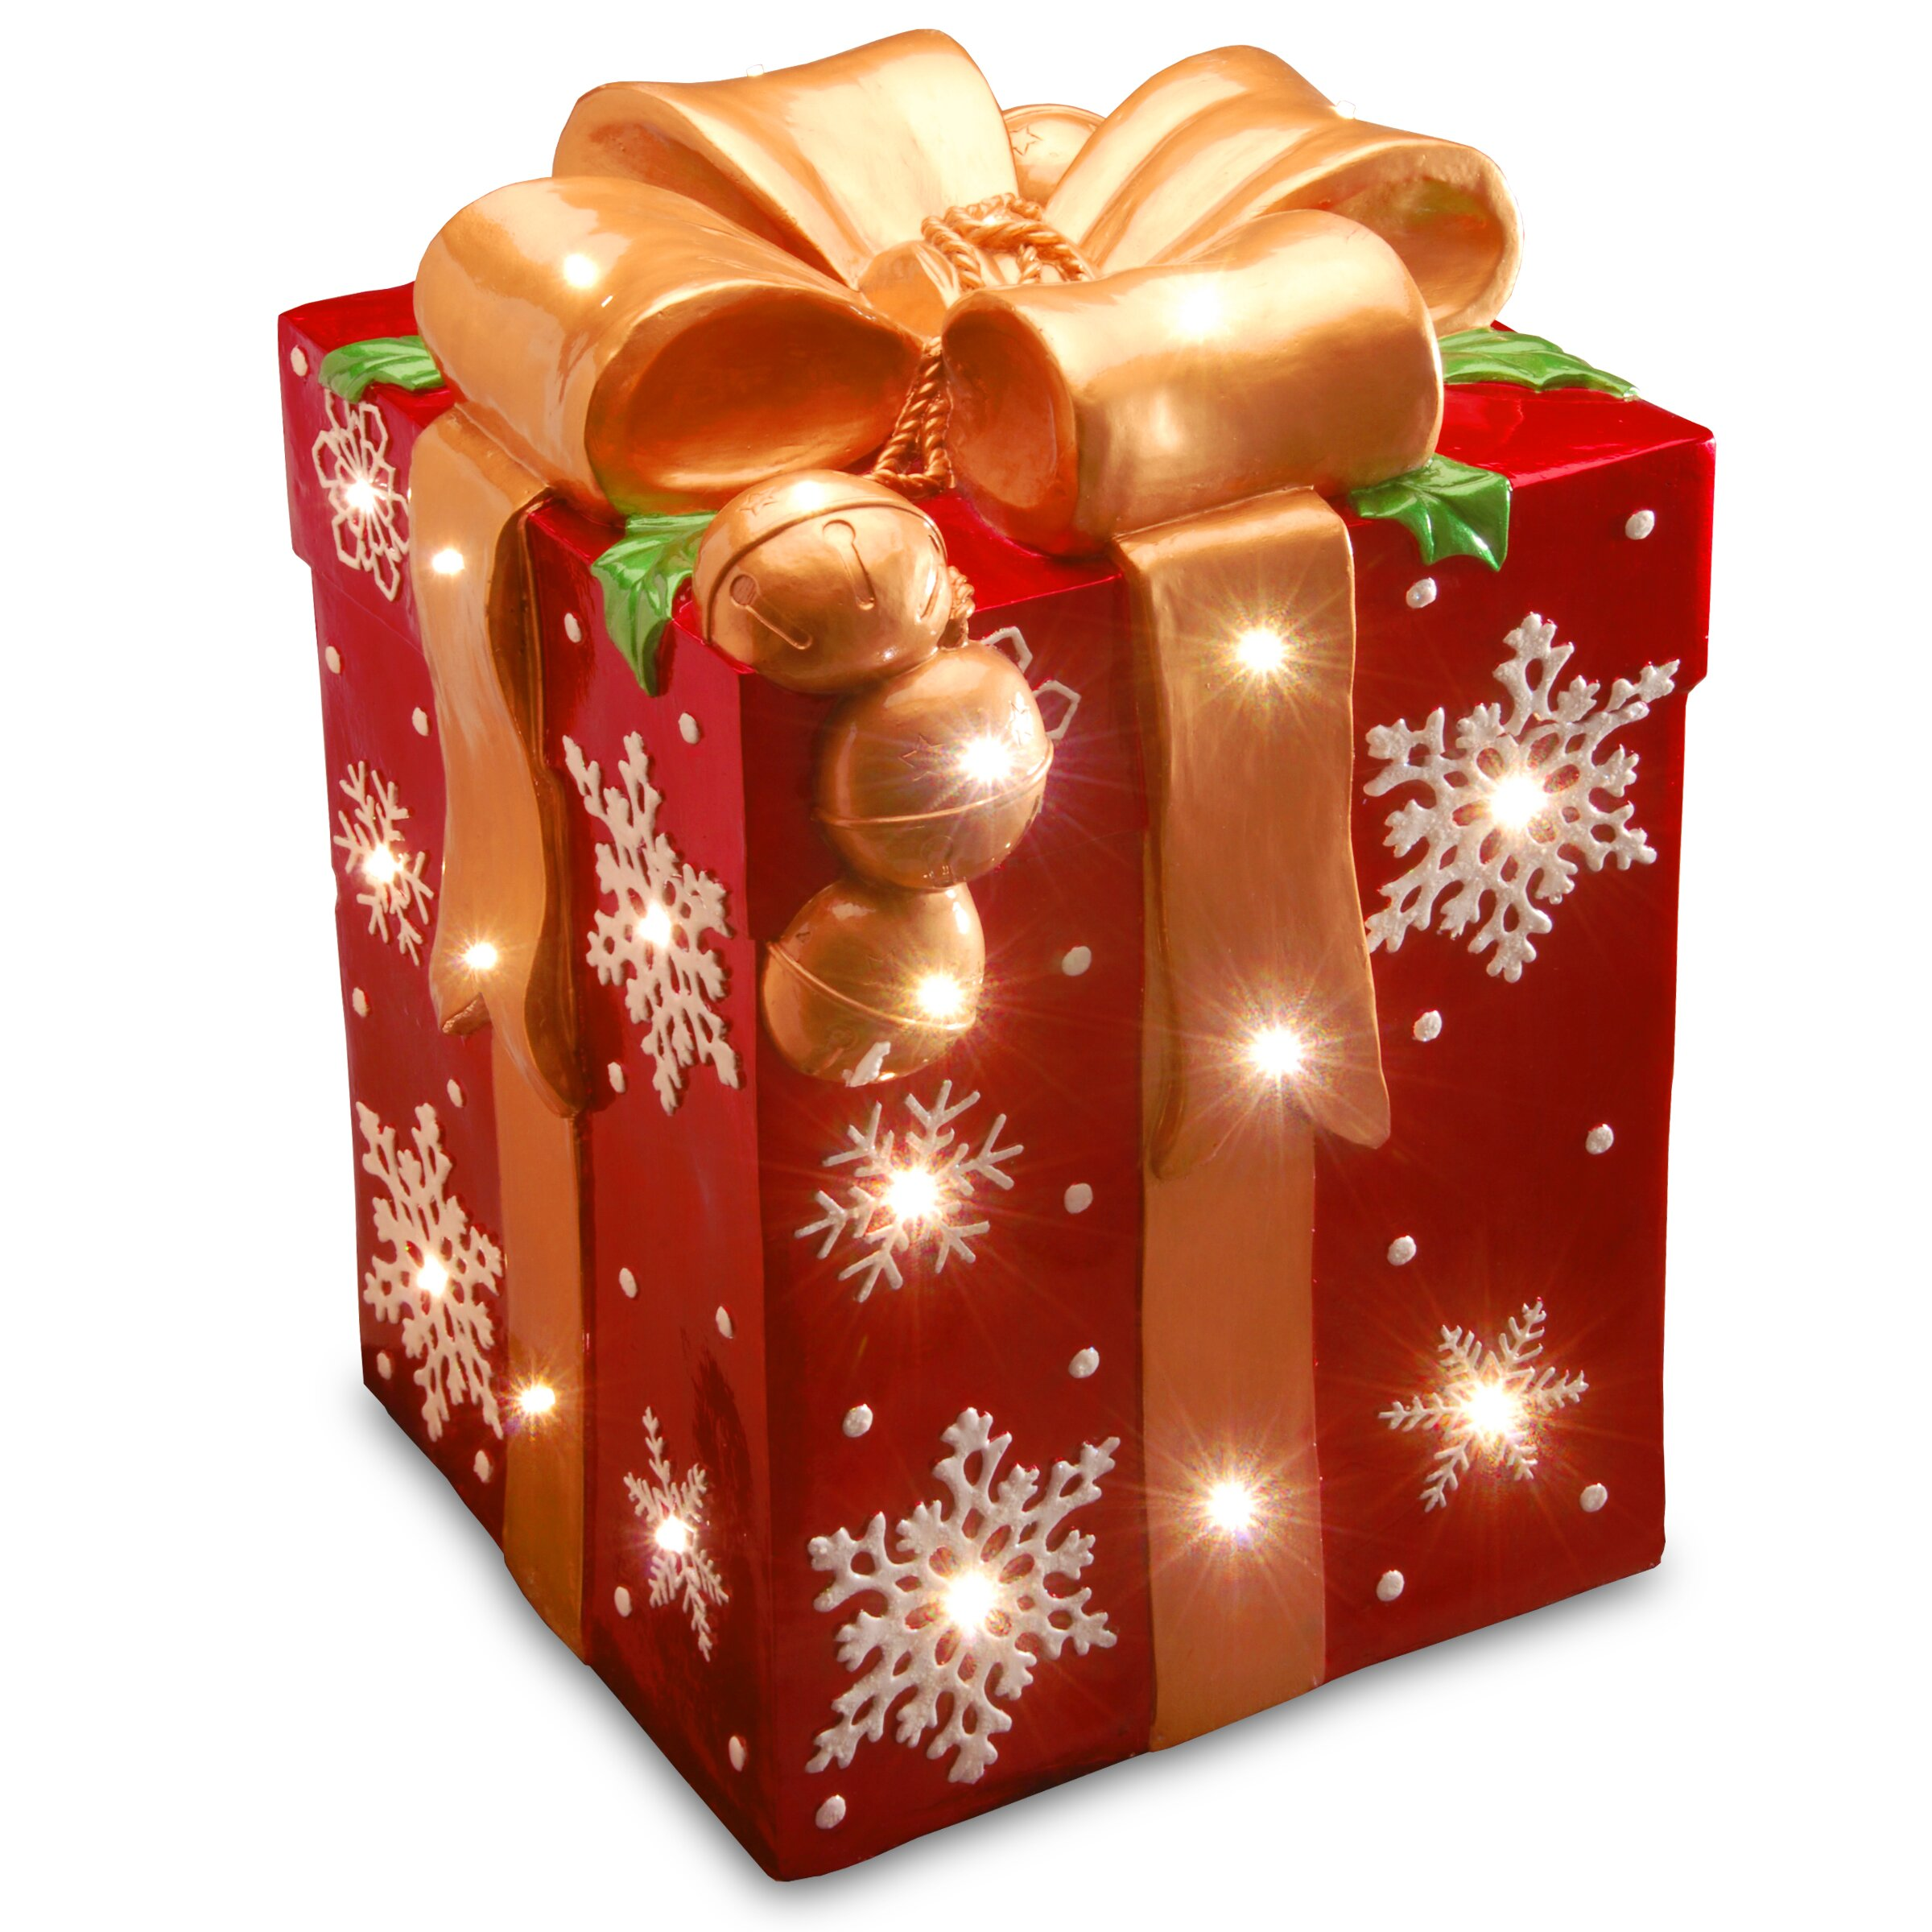 Gift Box Christmas Decorations: National Tree Co. Pre-Lit Gift Box Decoration & Reviews